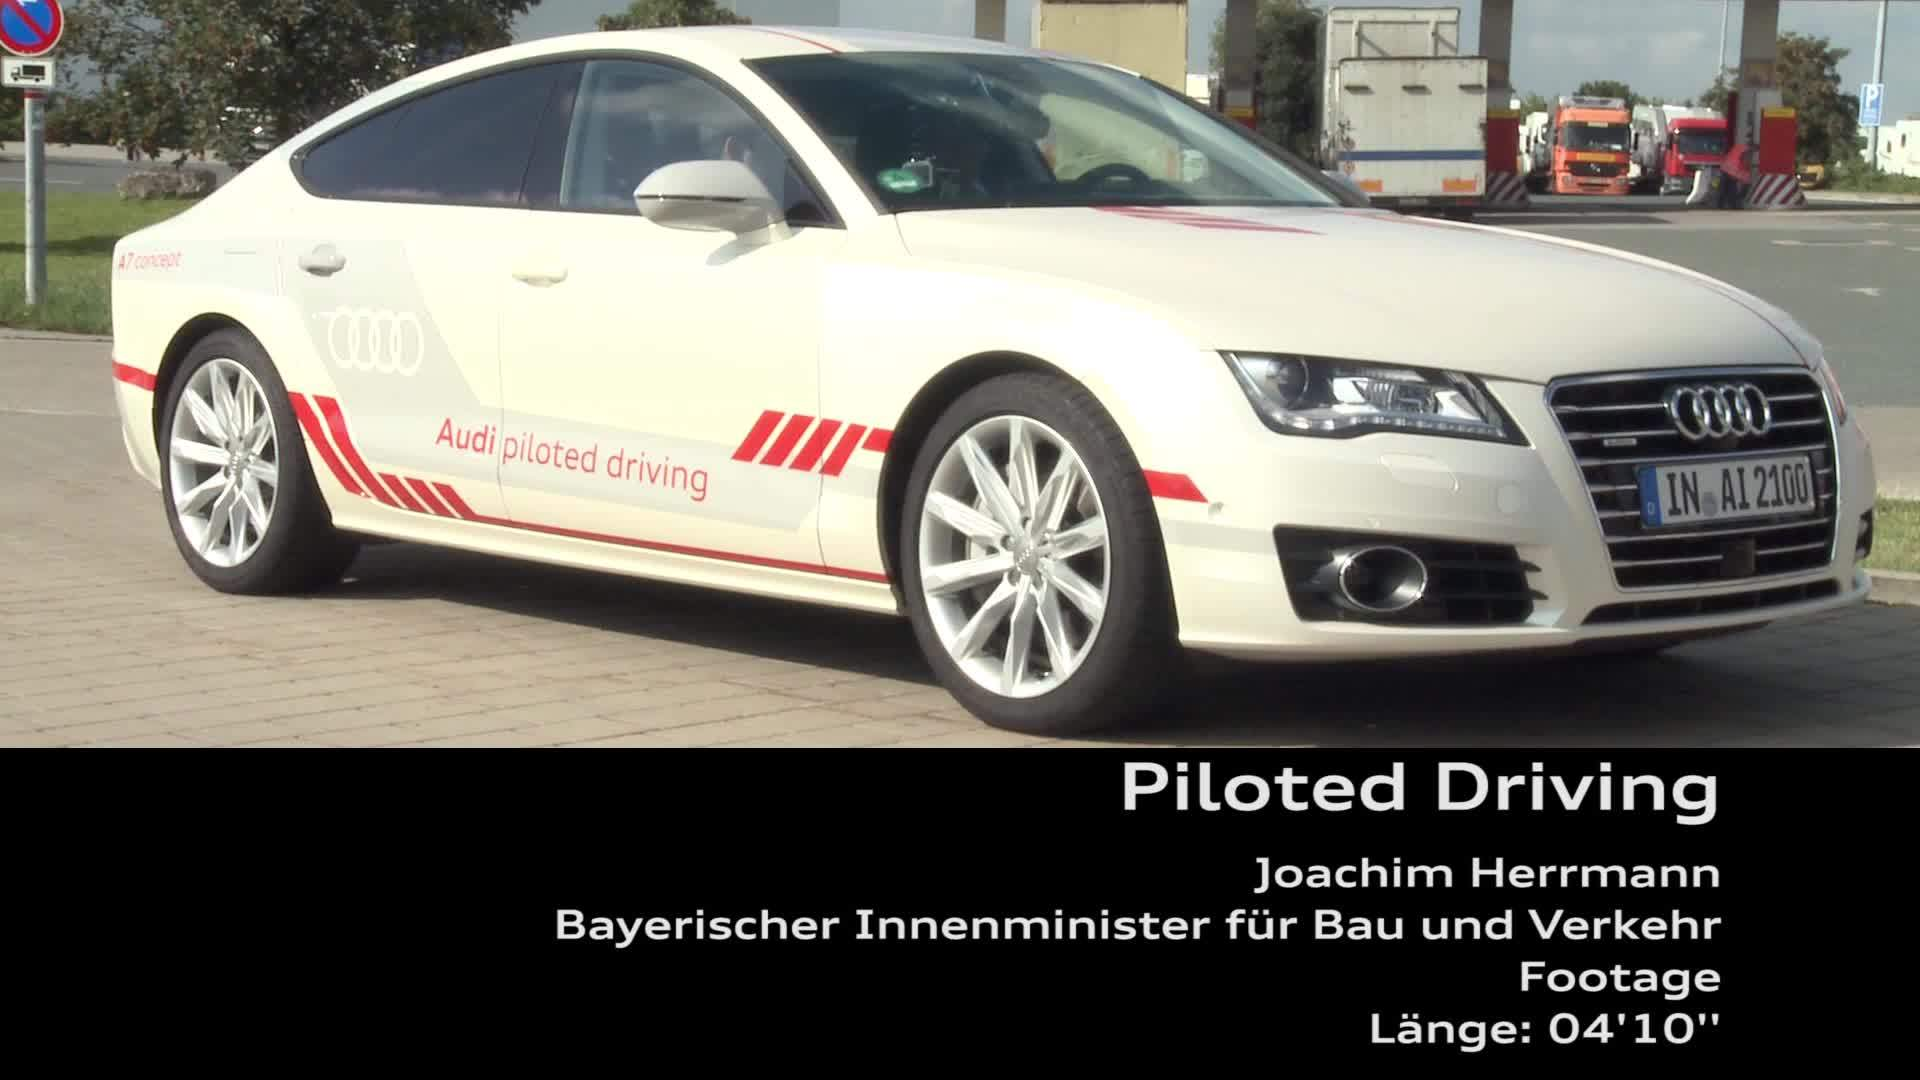 Piloted Driving - Minister Joachim Herrmann - Footage